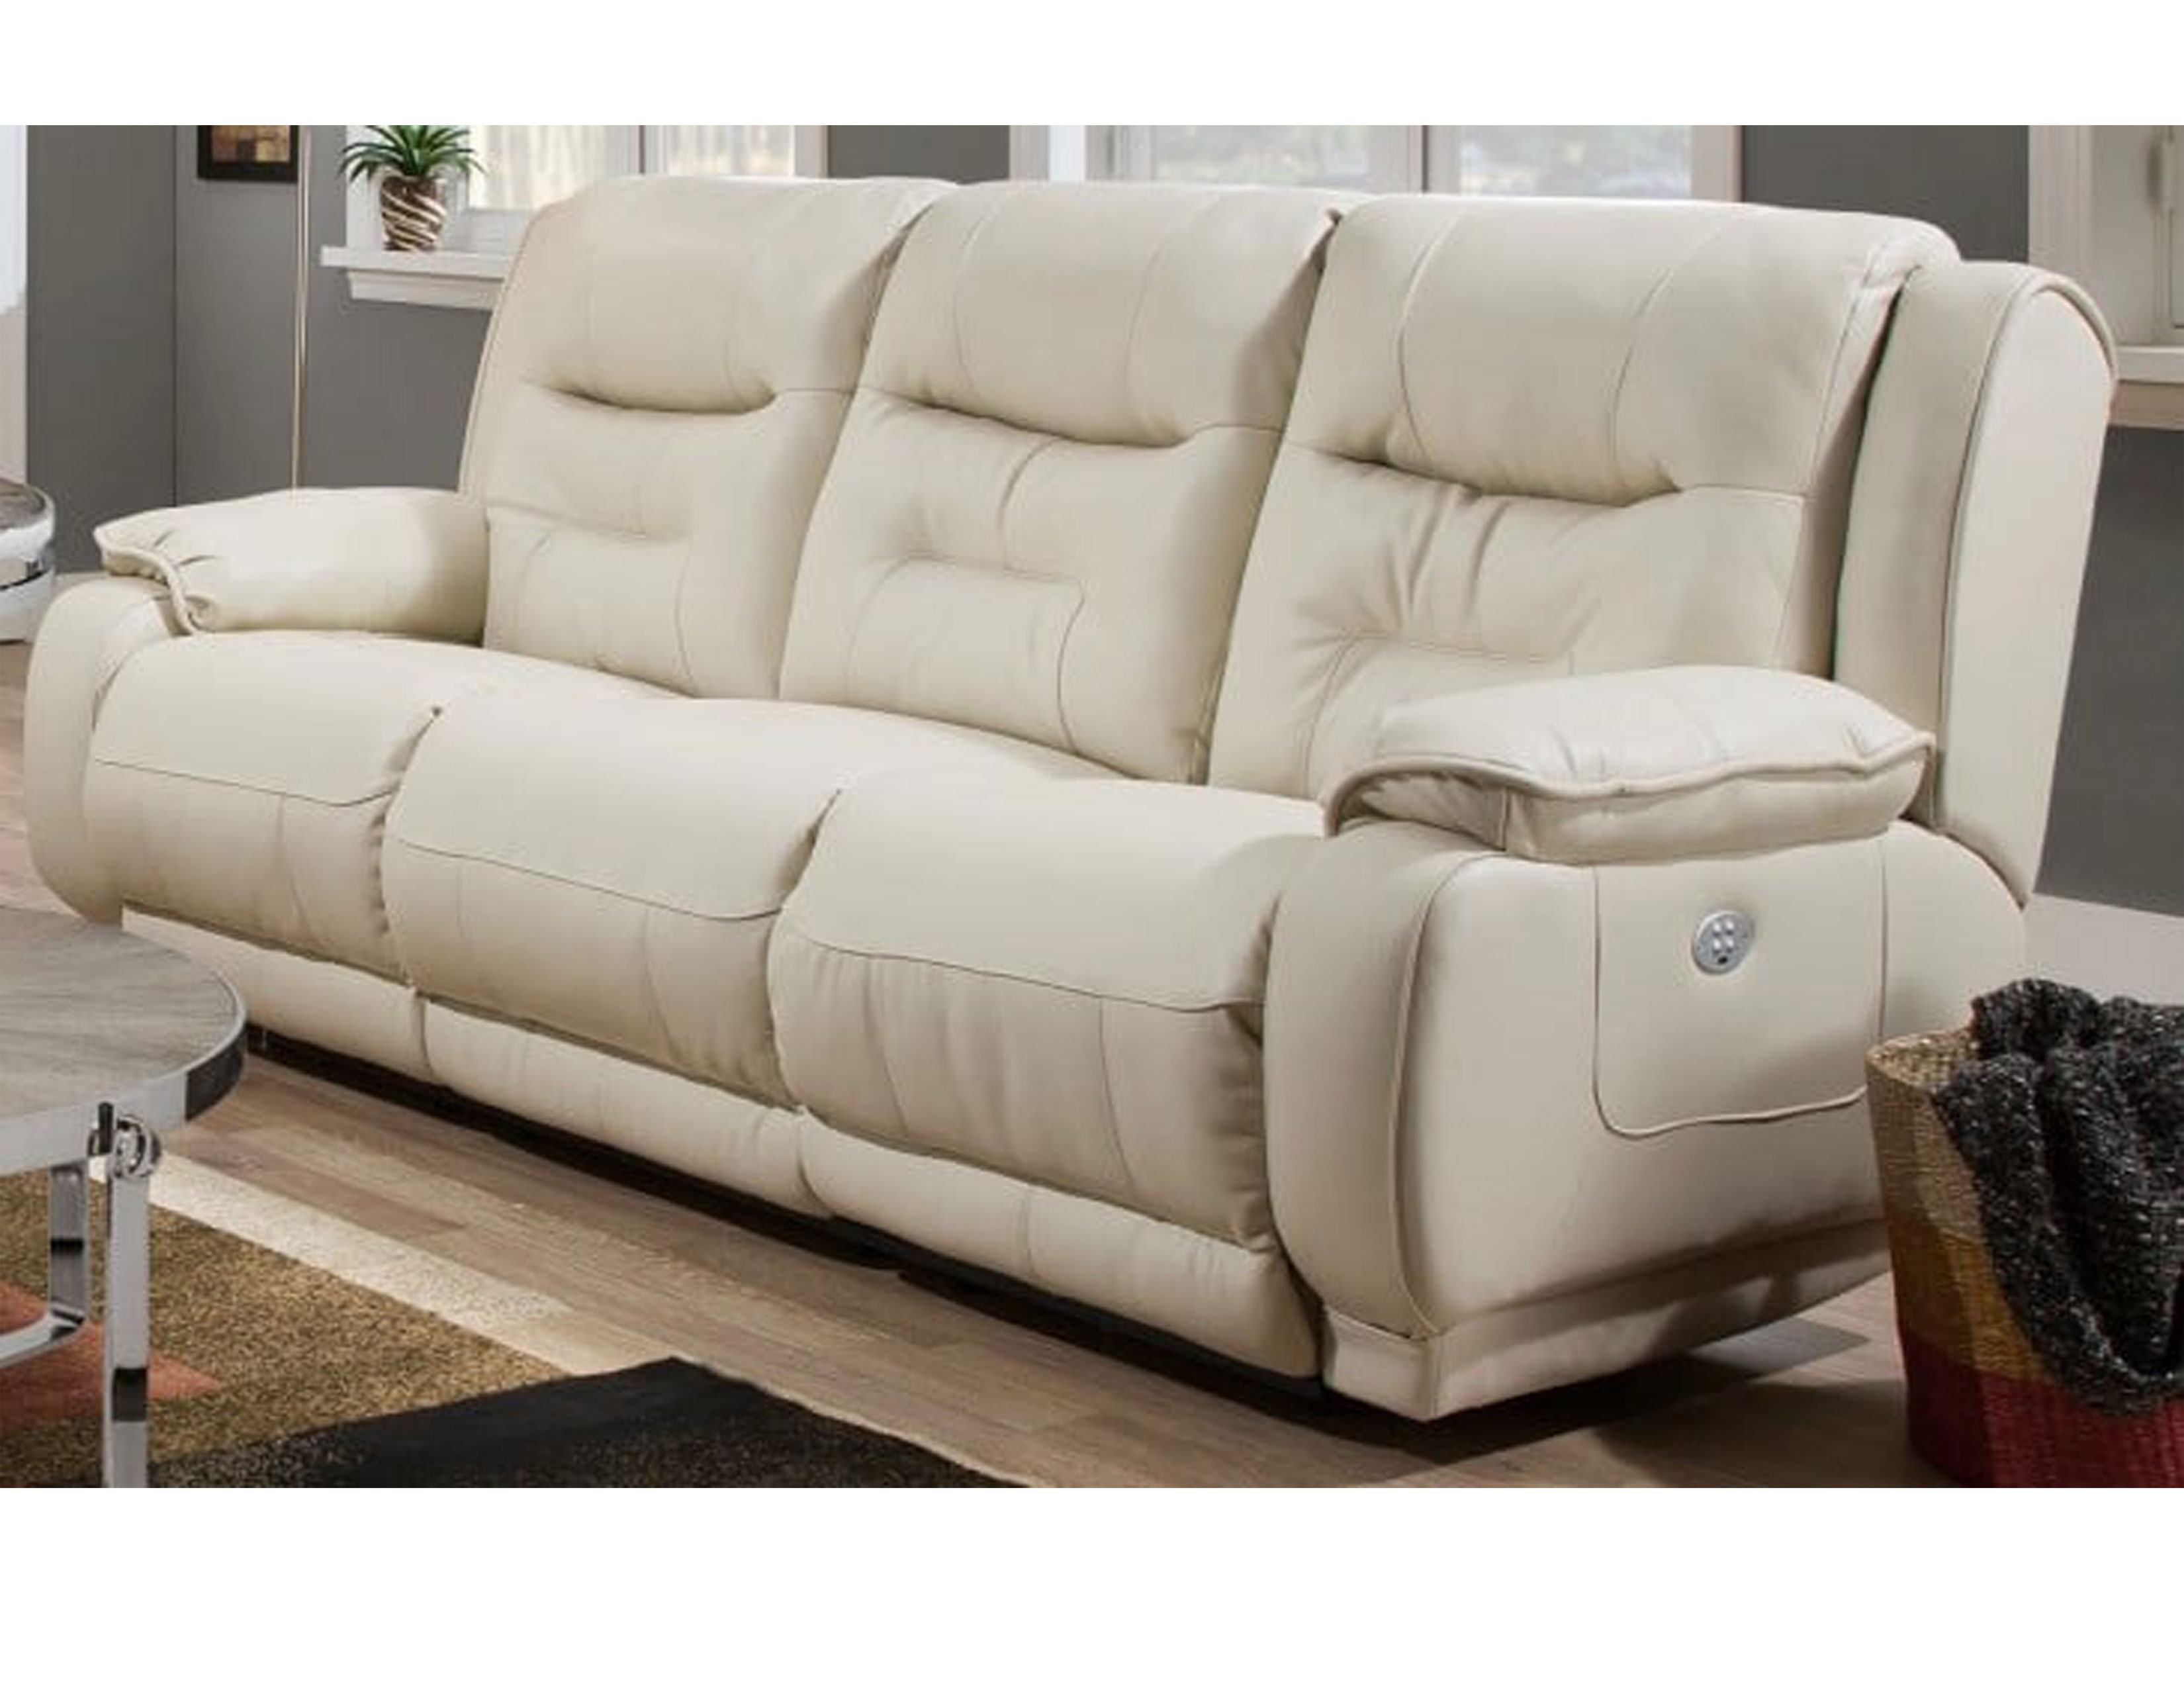 Surprising Crescent Reclining Sofa 140 Fabrics And Sofas And Sectionals Machost Co Dining Chair Design Ideas Machostcouk